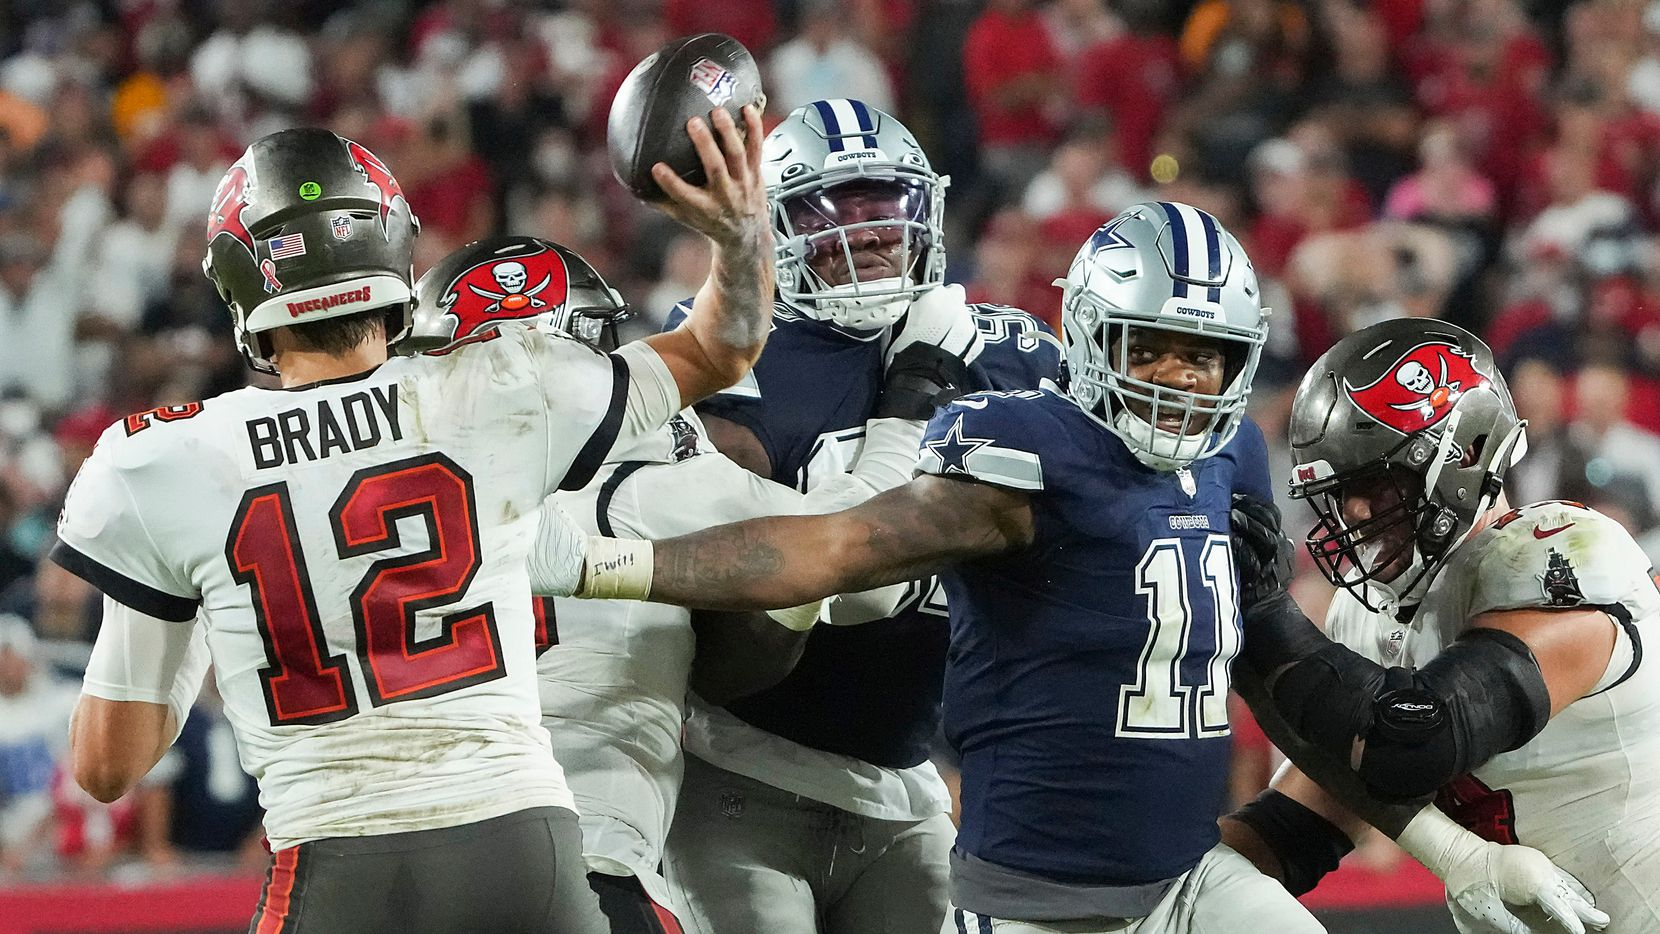 Tampa Bay Buccaneers quarterback Tom Brady throws a pass under pressure from Dallas Cowboys linebacker Micah Parsons (11) during the second half at Raymond James Stadium in Tampa on Sept. 9, 2021. The  Buccaneers won 31-29 on a late field goal.